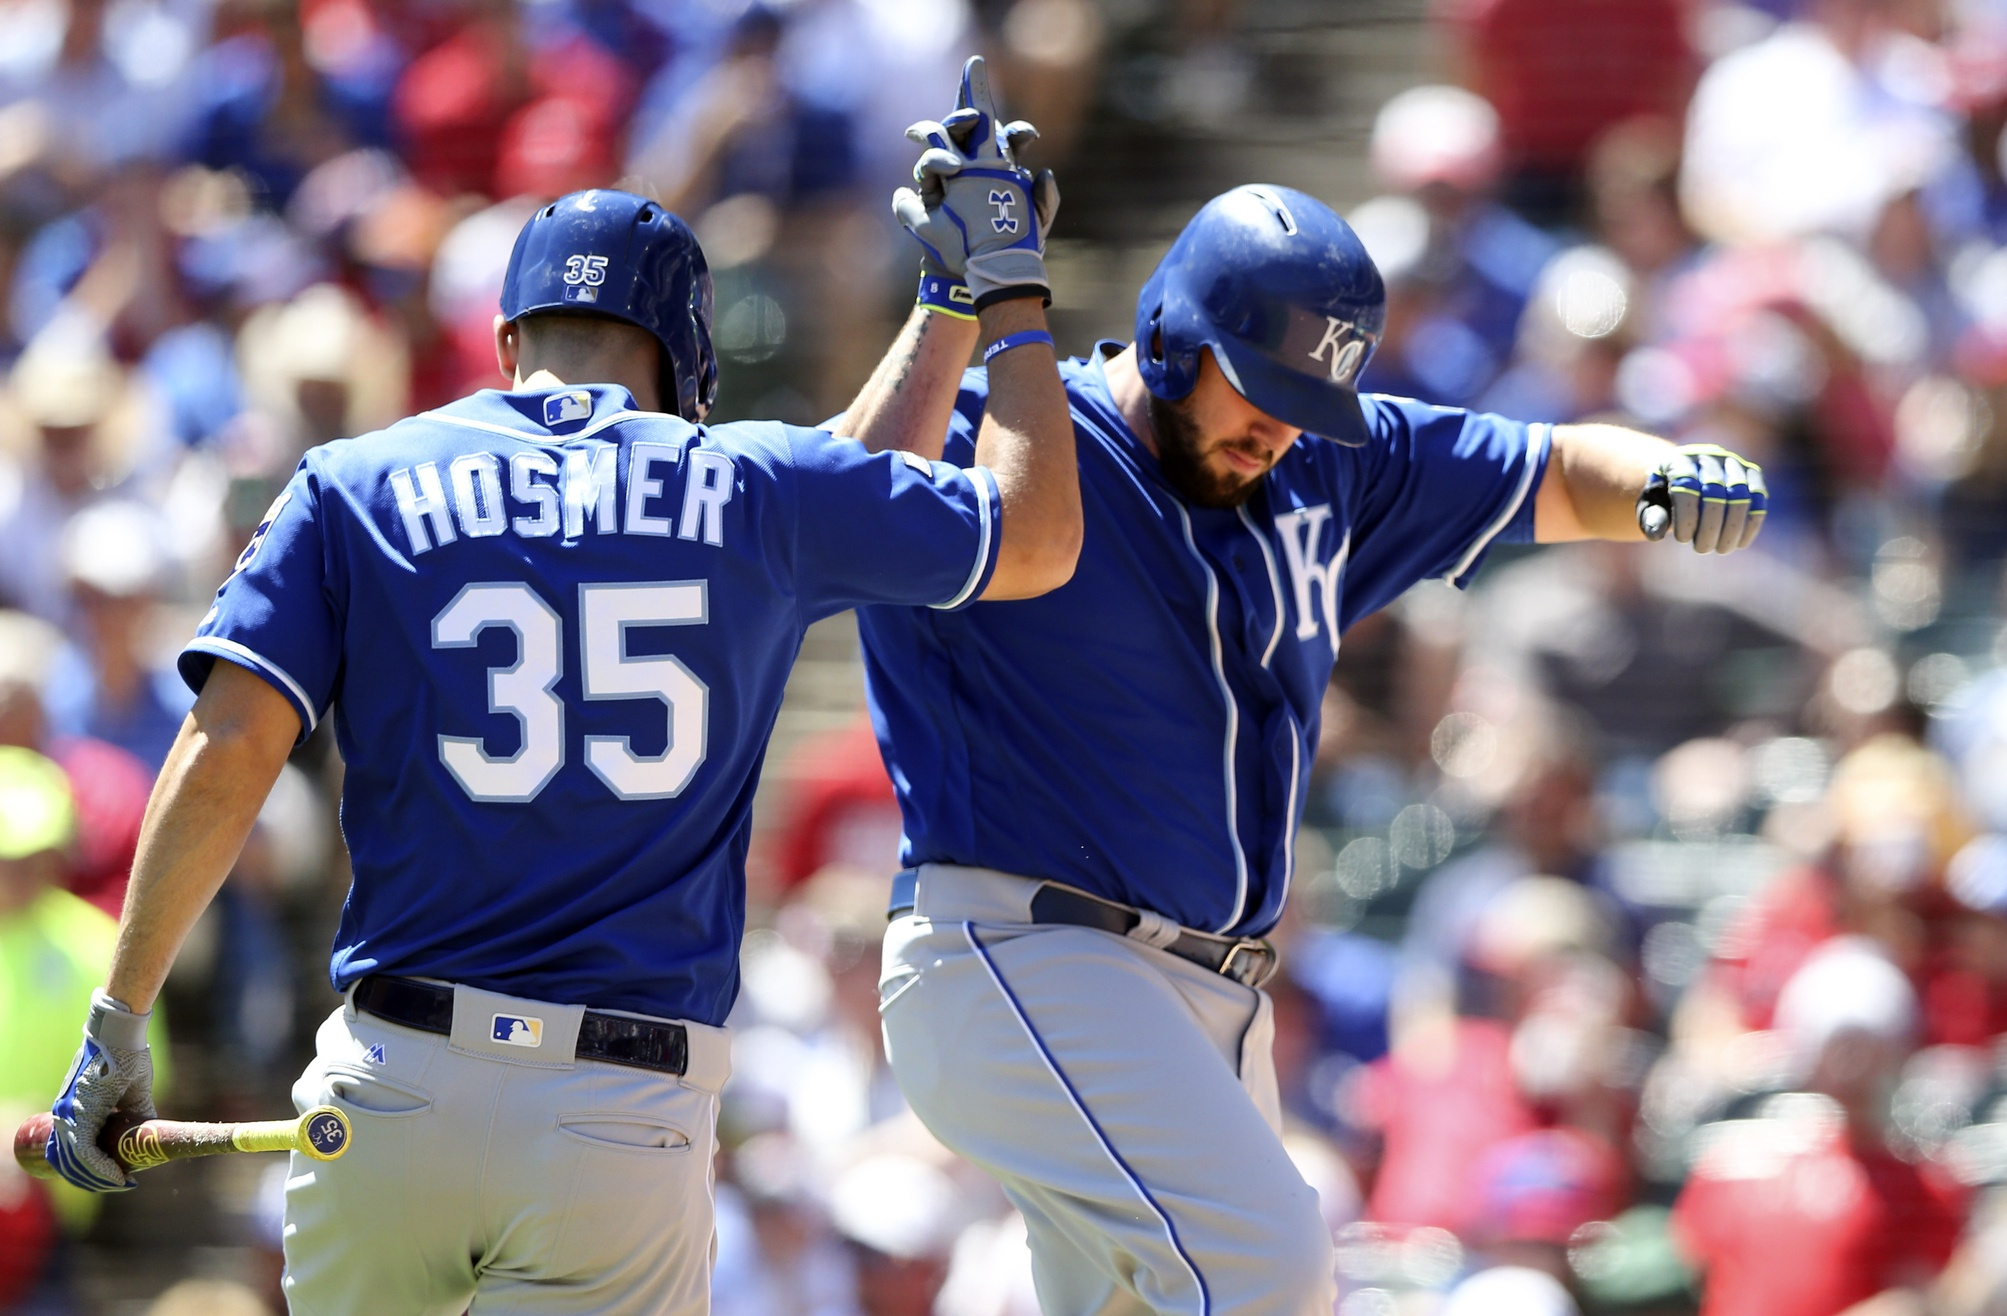 Eric Hosmer and Mike Moustakas